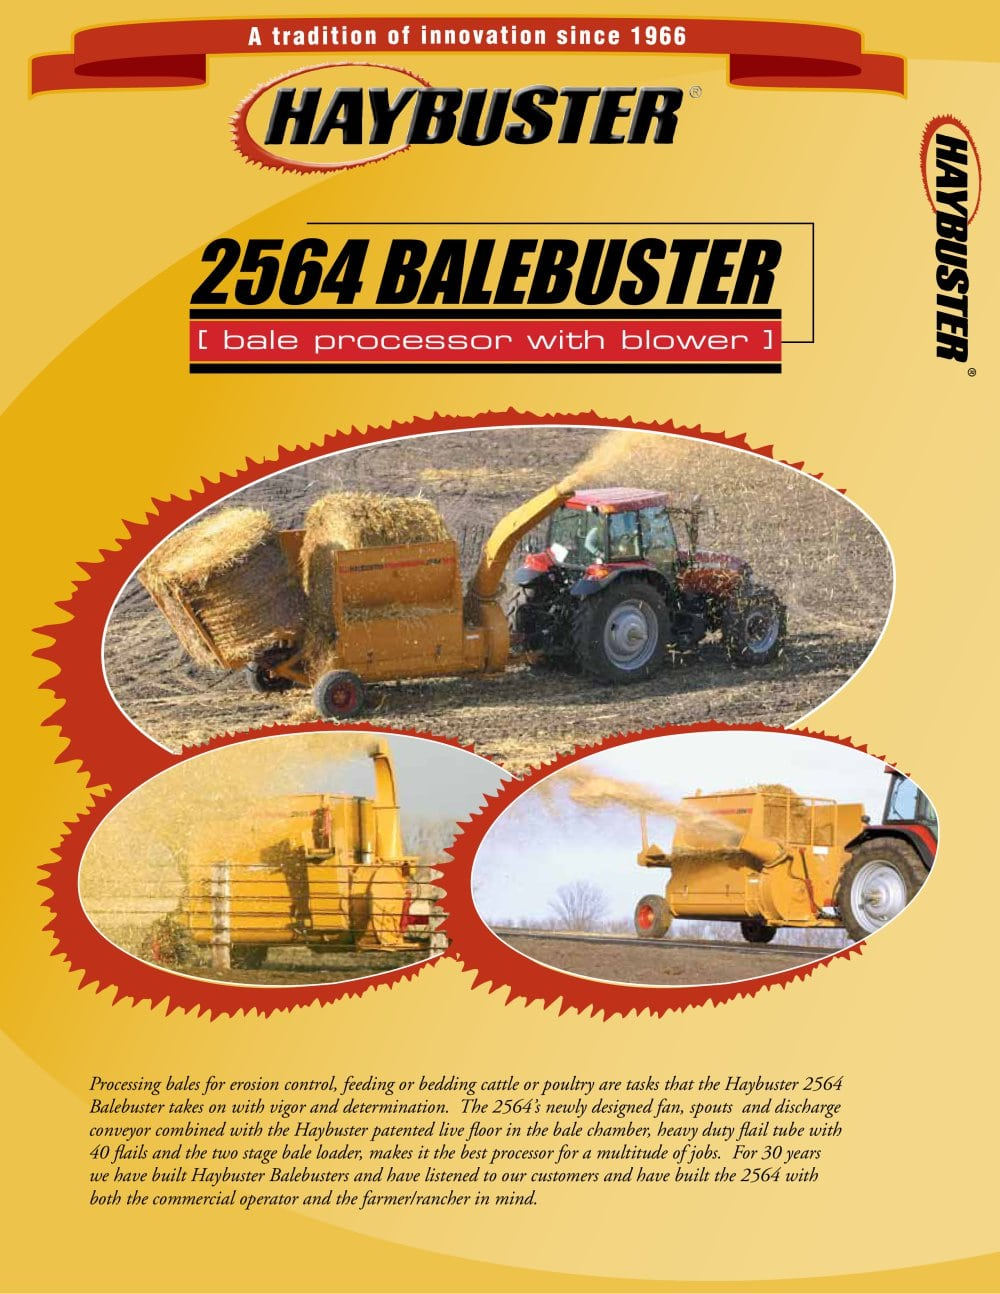 2564 BALEBUSTER - Haybuster Agricultural Products - PDF